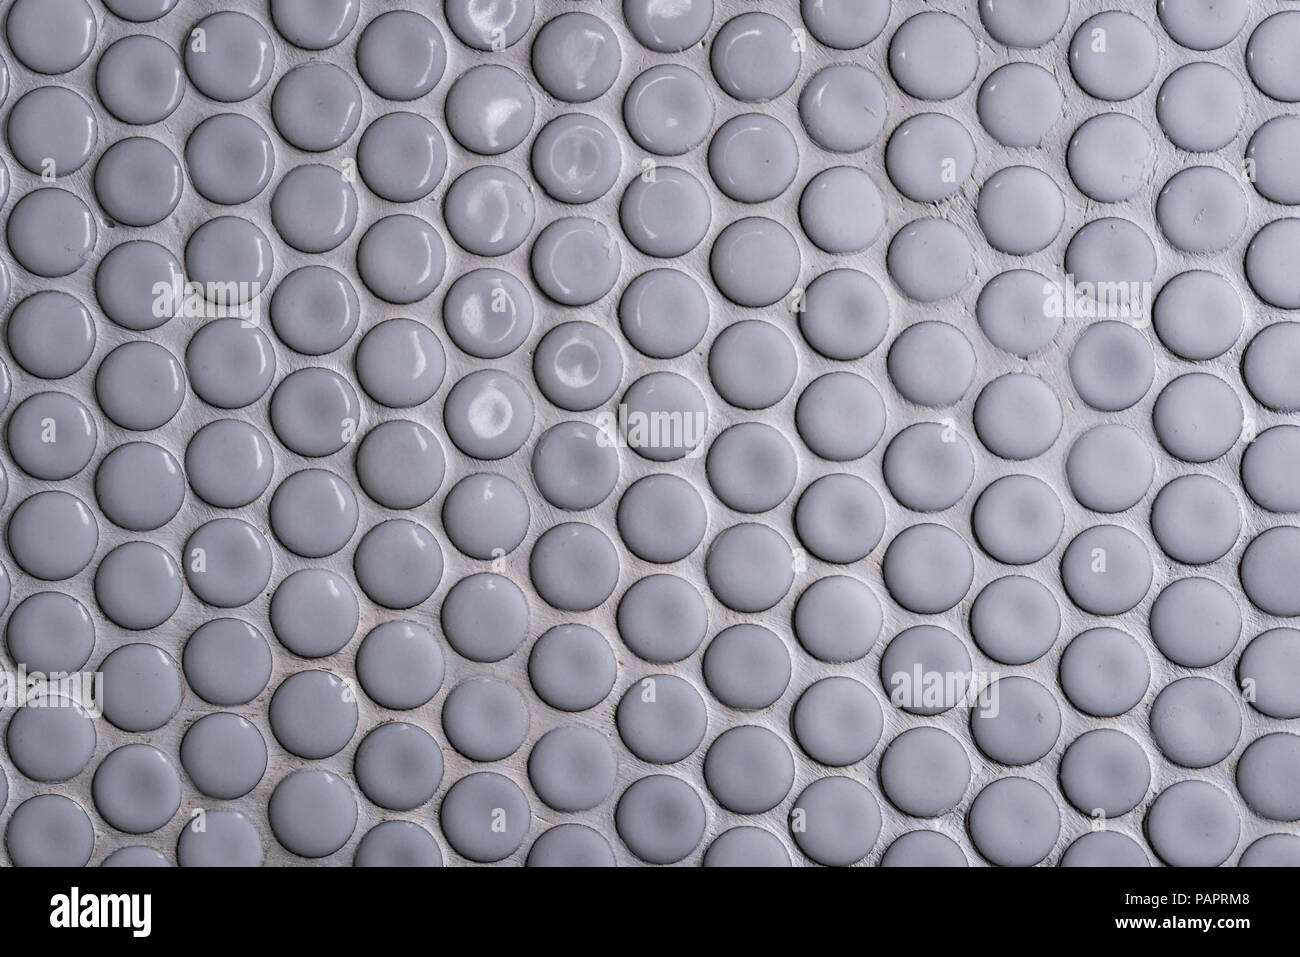 White Ceramic Tile Wall With Many Small Round Unique Pattern Top